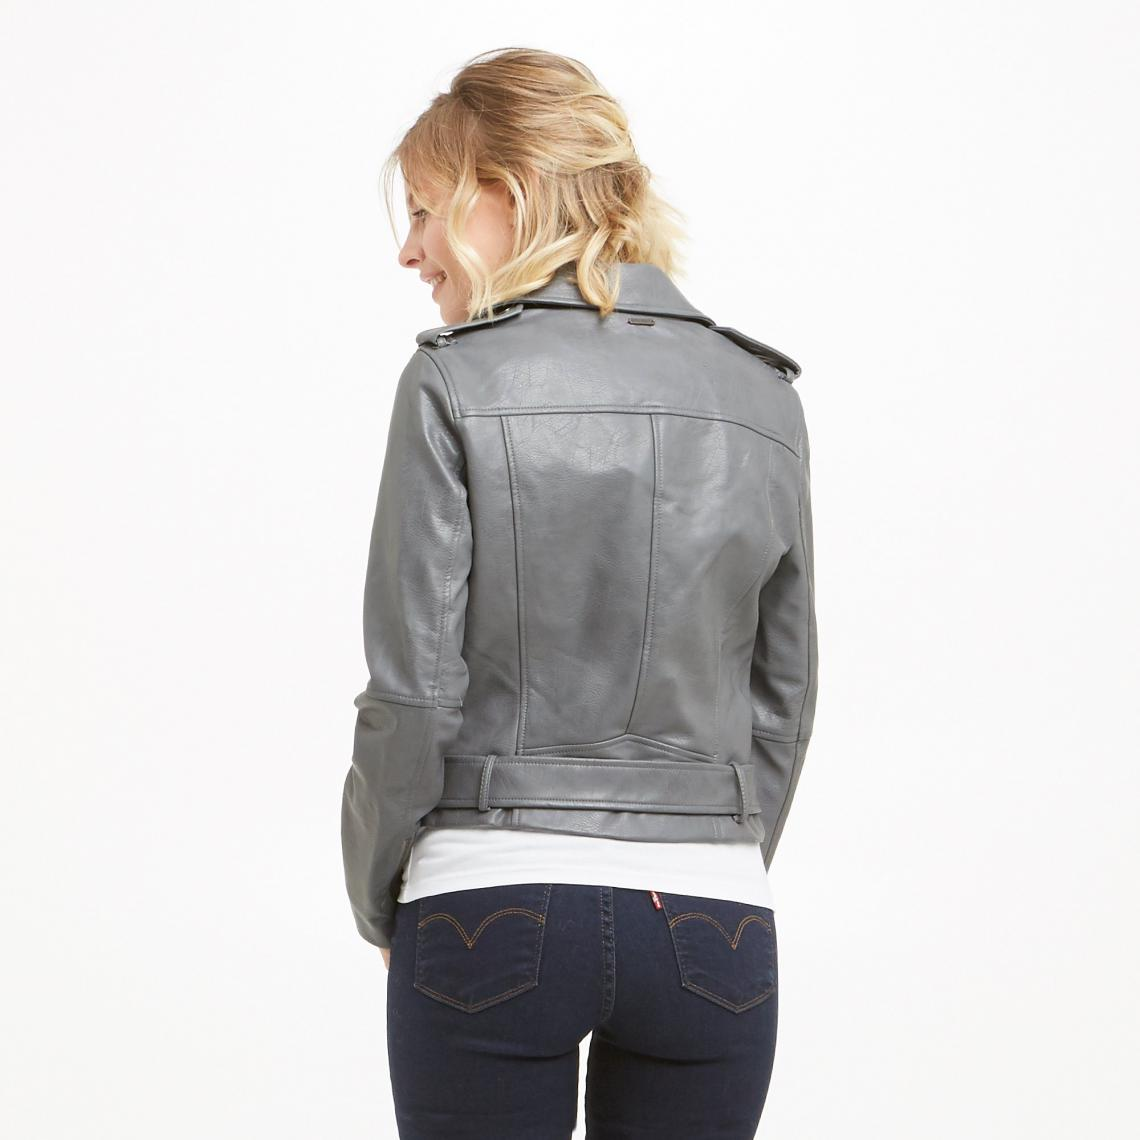 caf53a8d0bed Perfecto femme Ninel Pepe Jeans - Gris